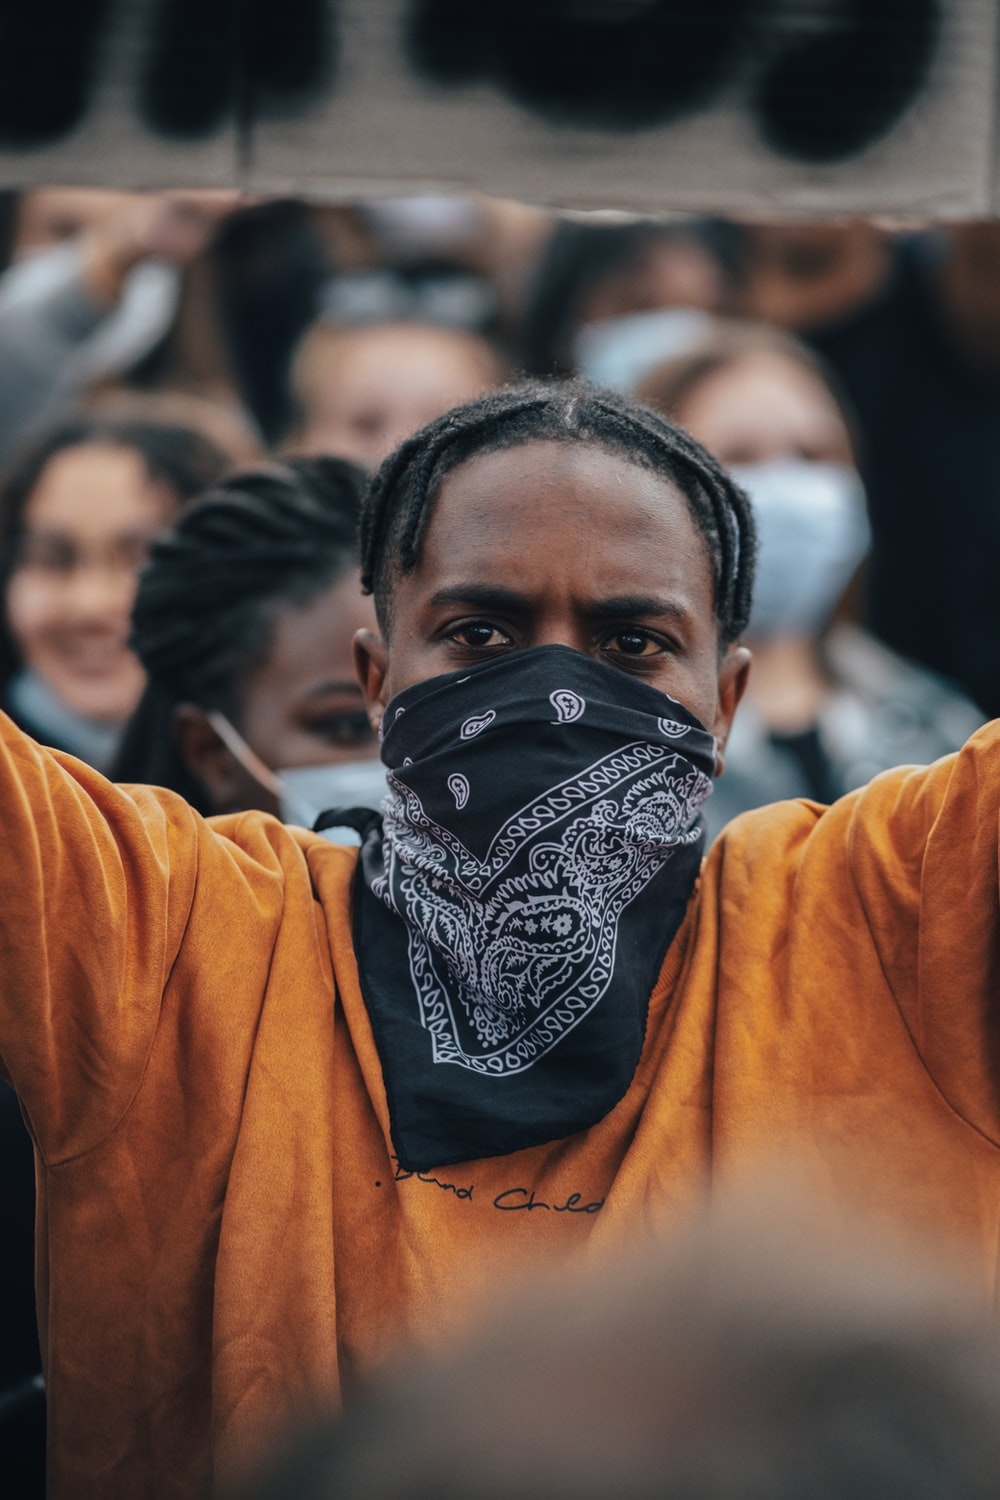 man in orange long sleeve shirt with black and white mask